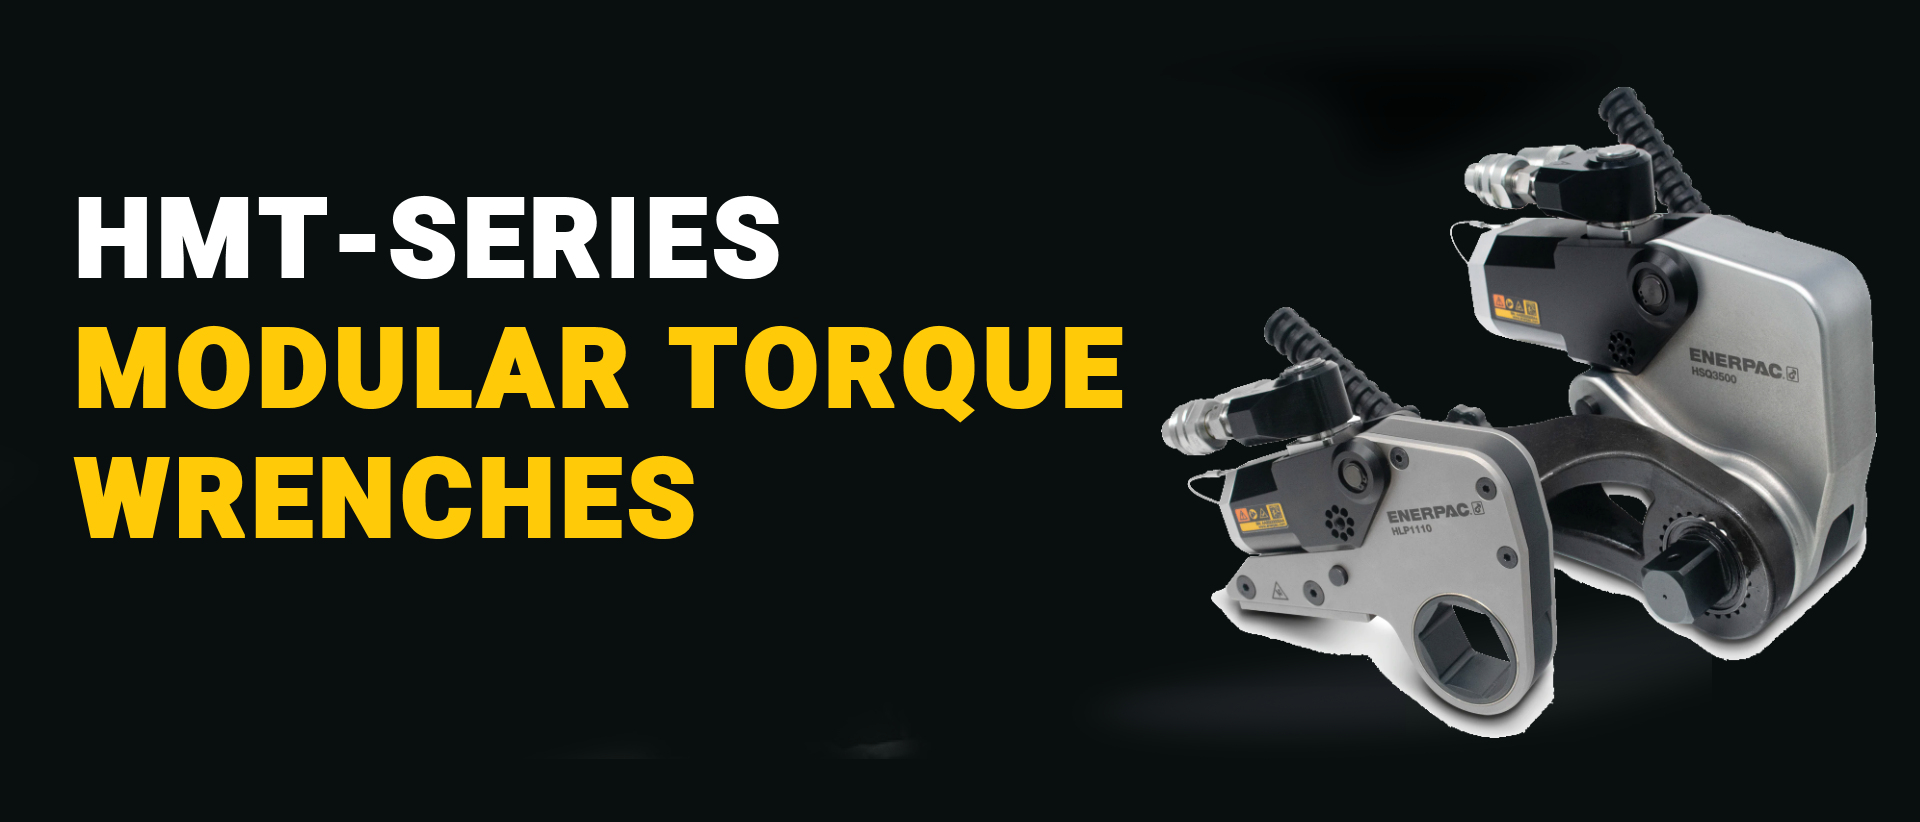 Enerpac HMT-Series Product Launch